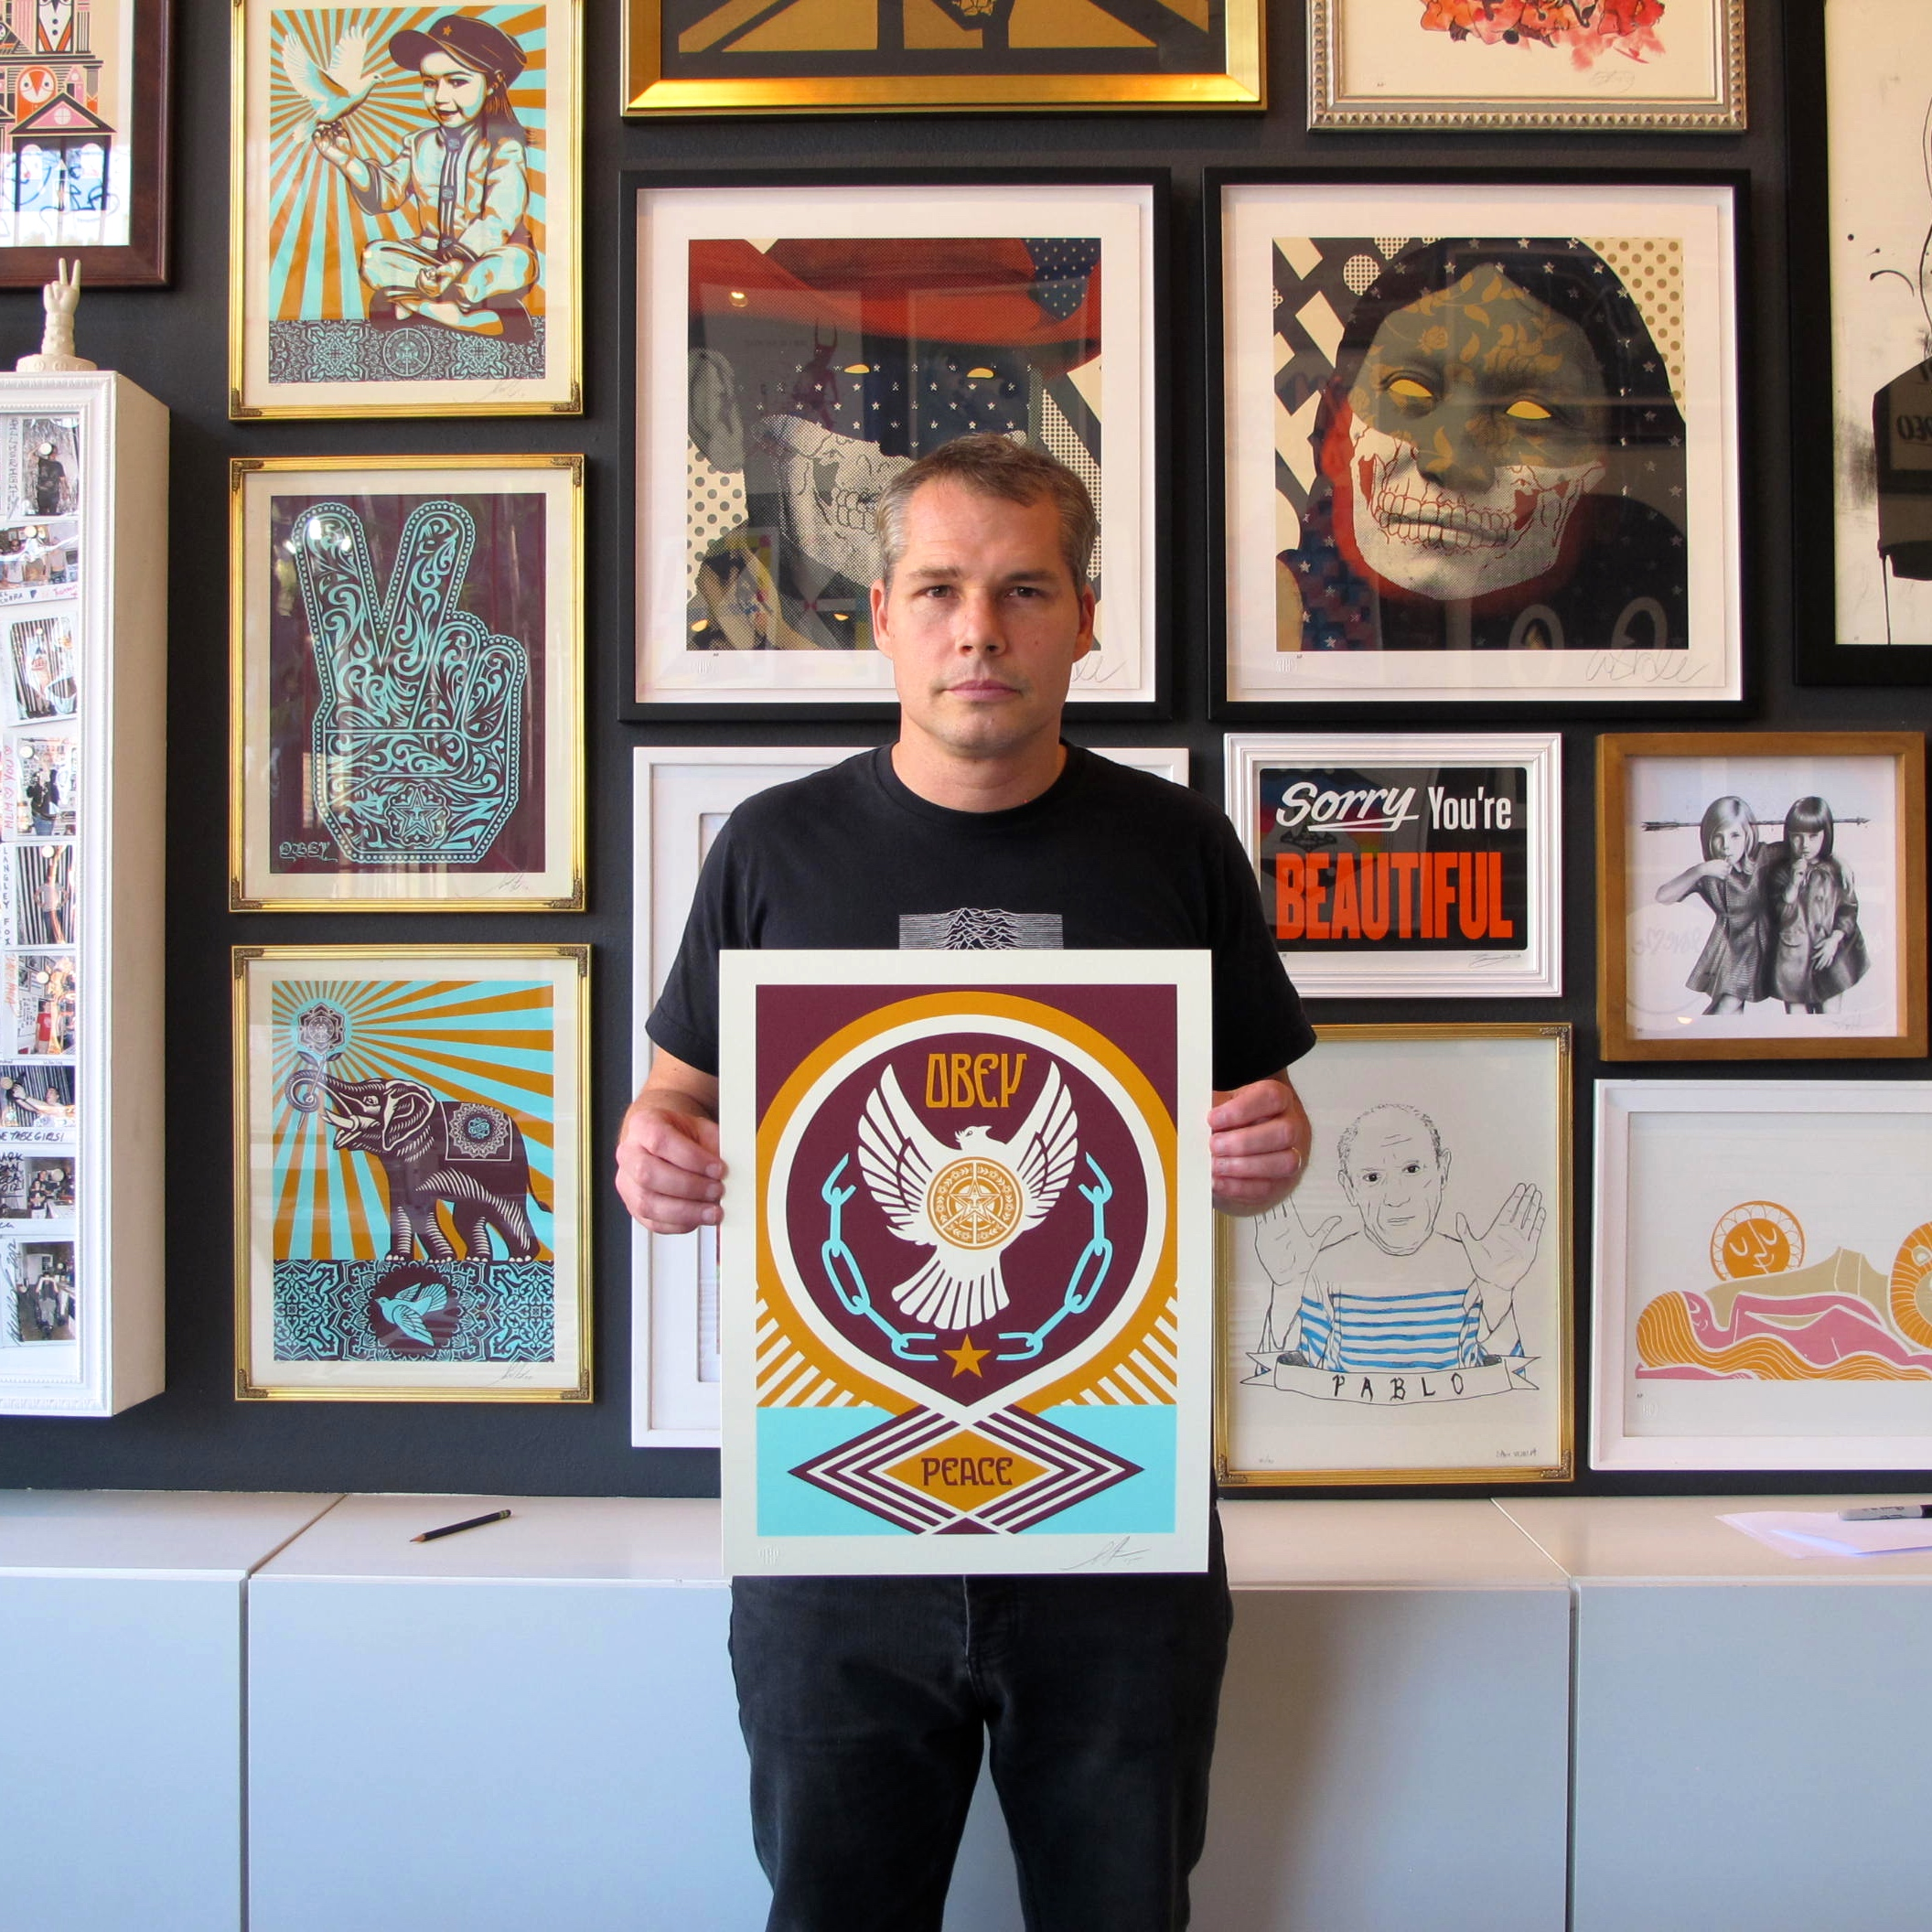 Poster Child Prints Peace Series 2 Doves X Poster Child Prints Release Obey Giant